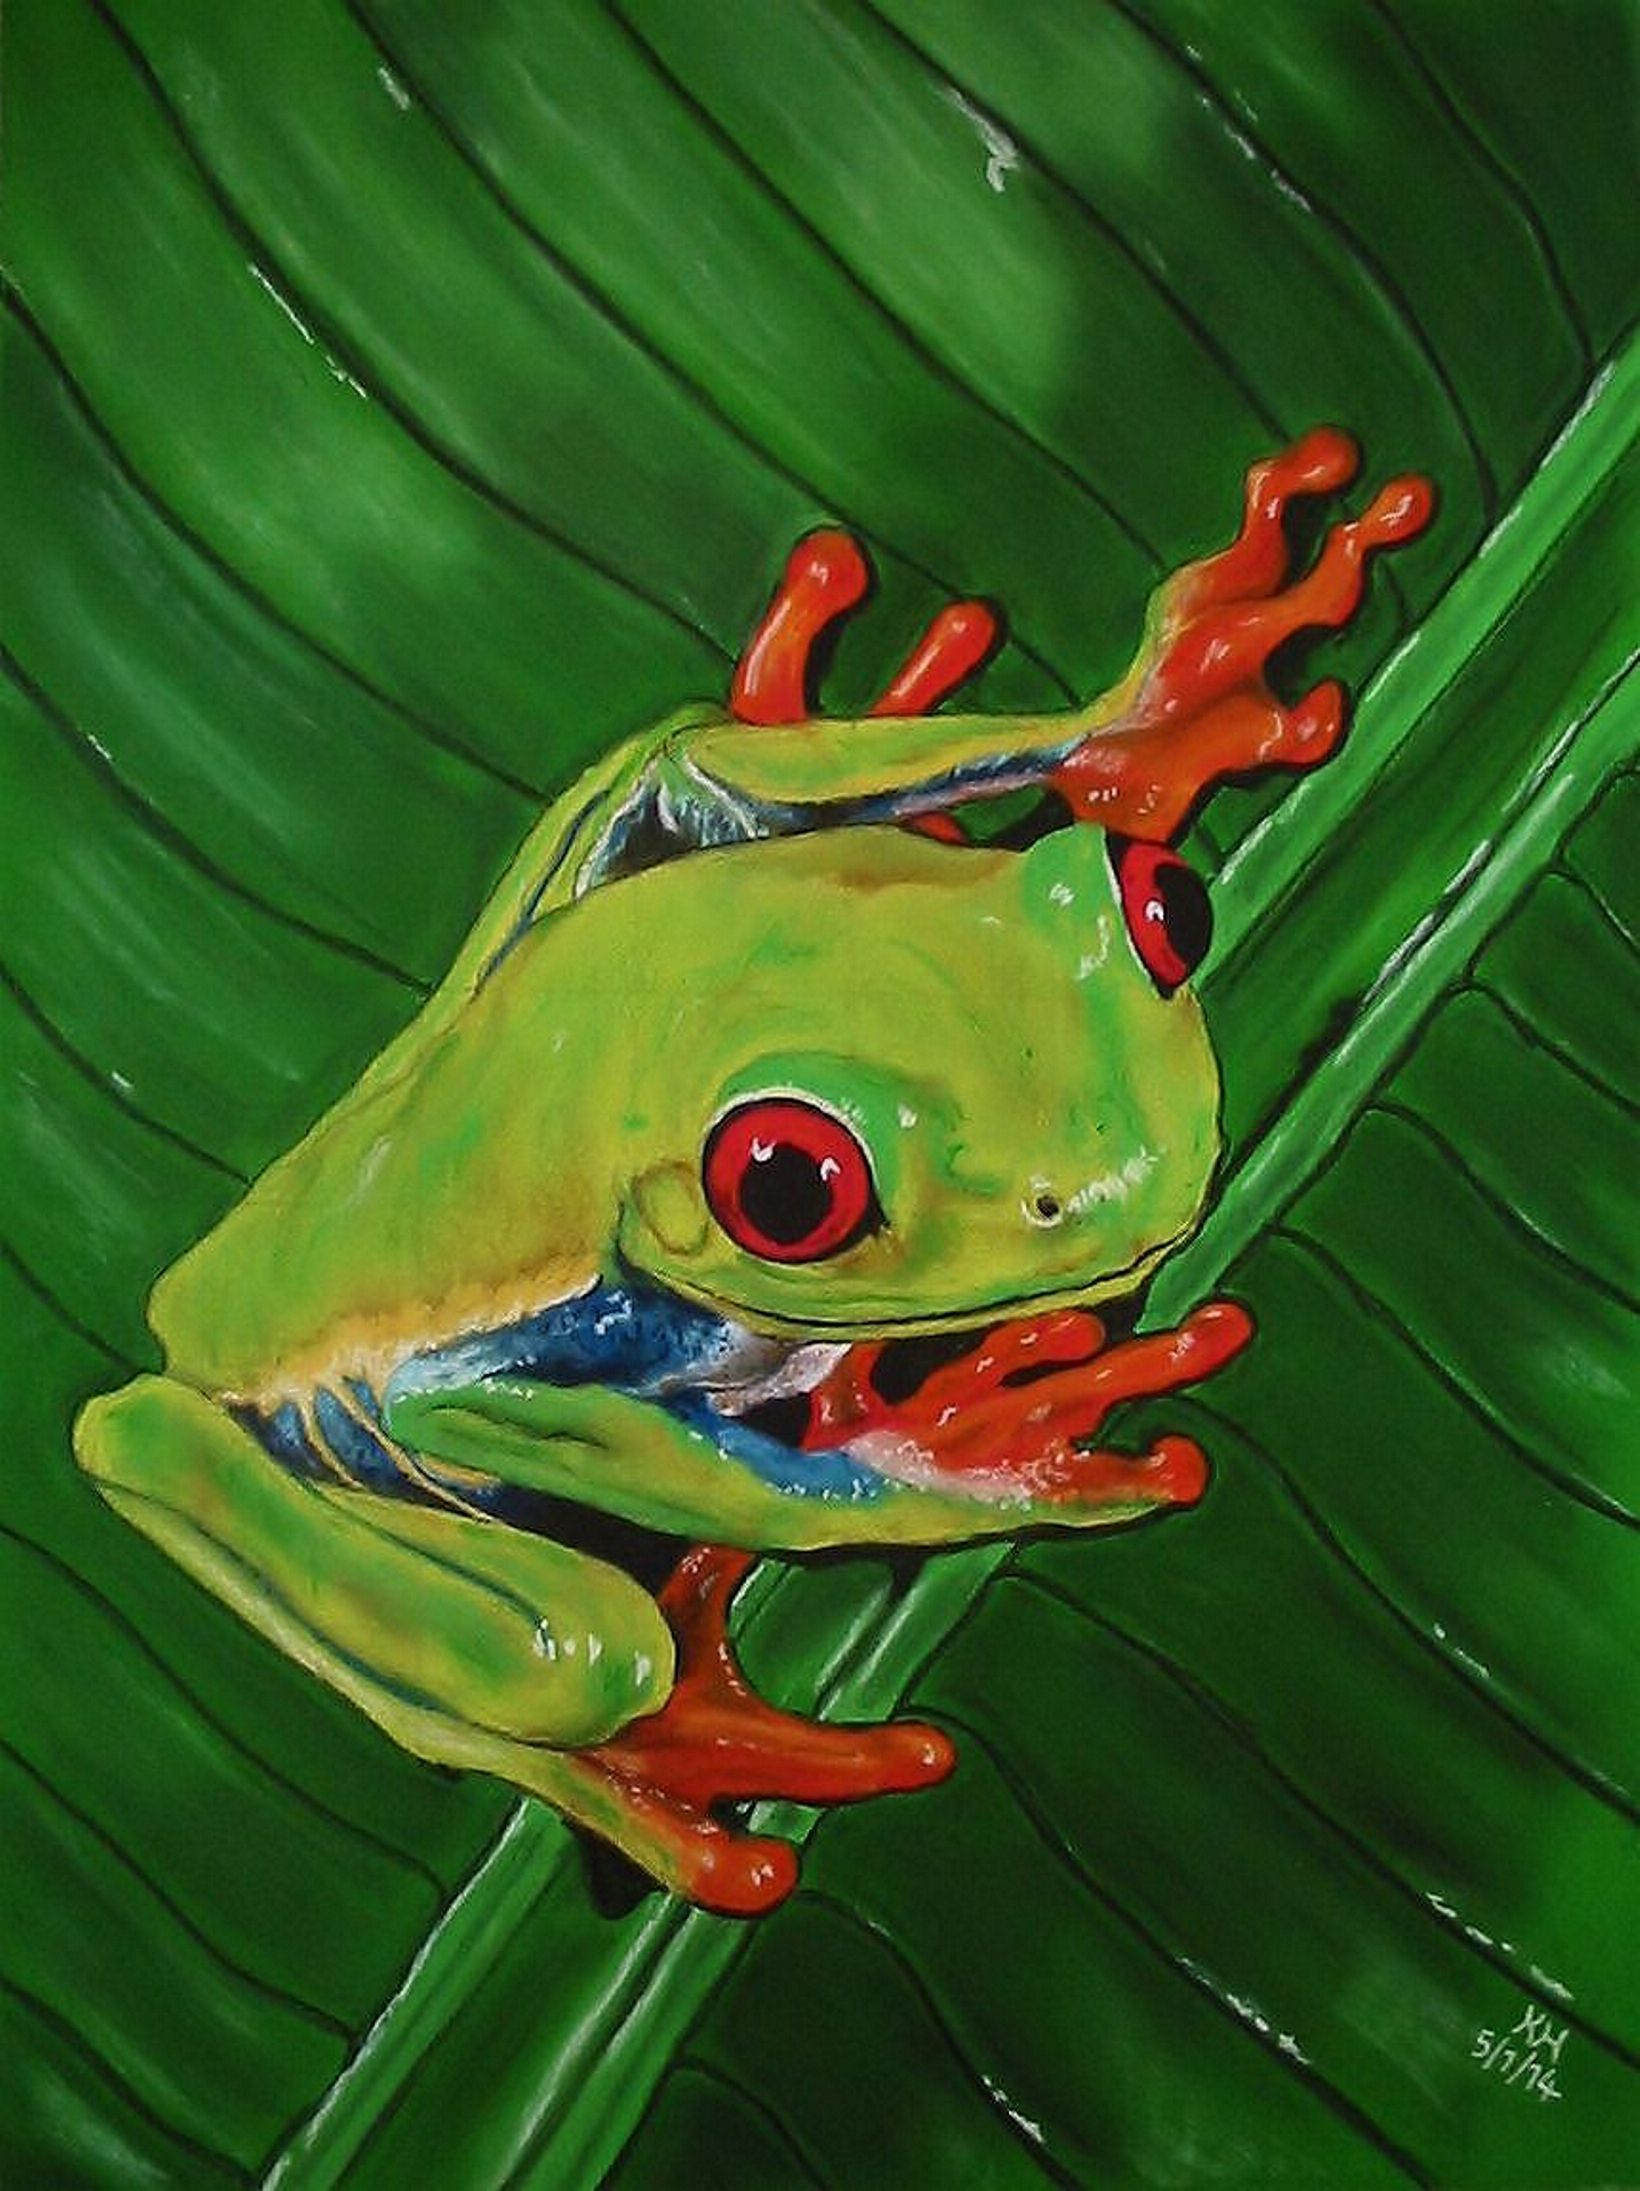 My green tree frog which I very much enjoyed creating with pastels on pastelmat :)